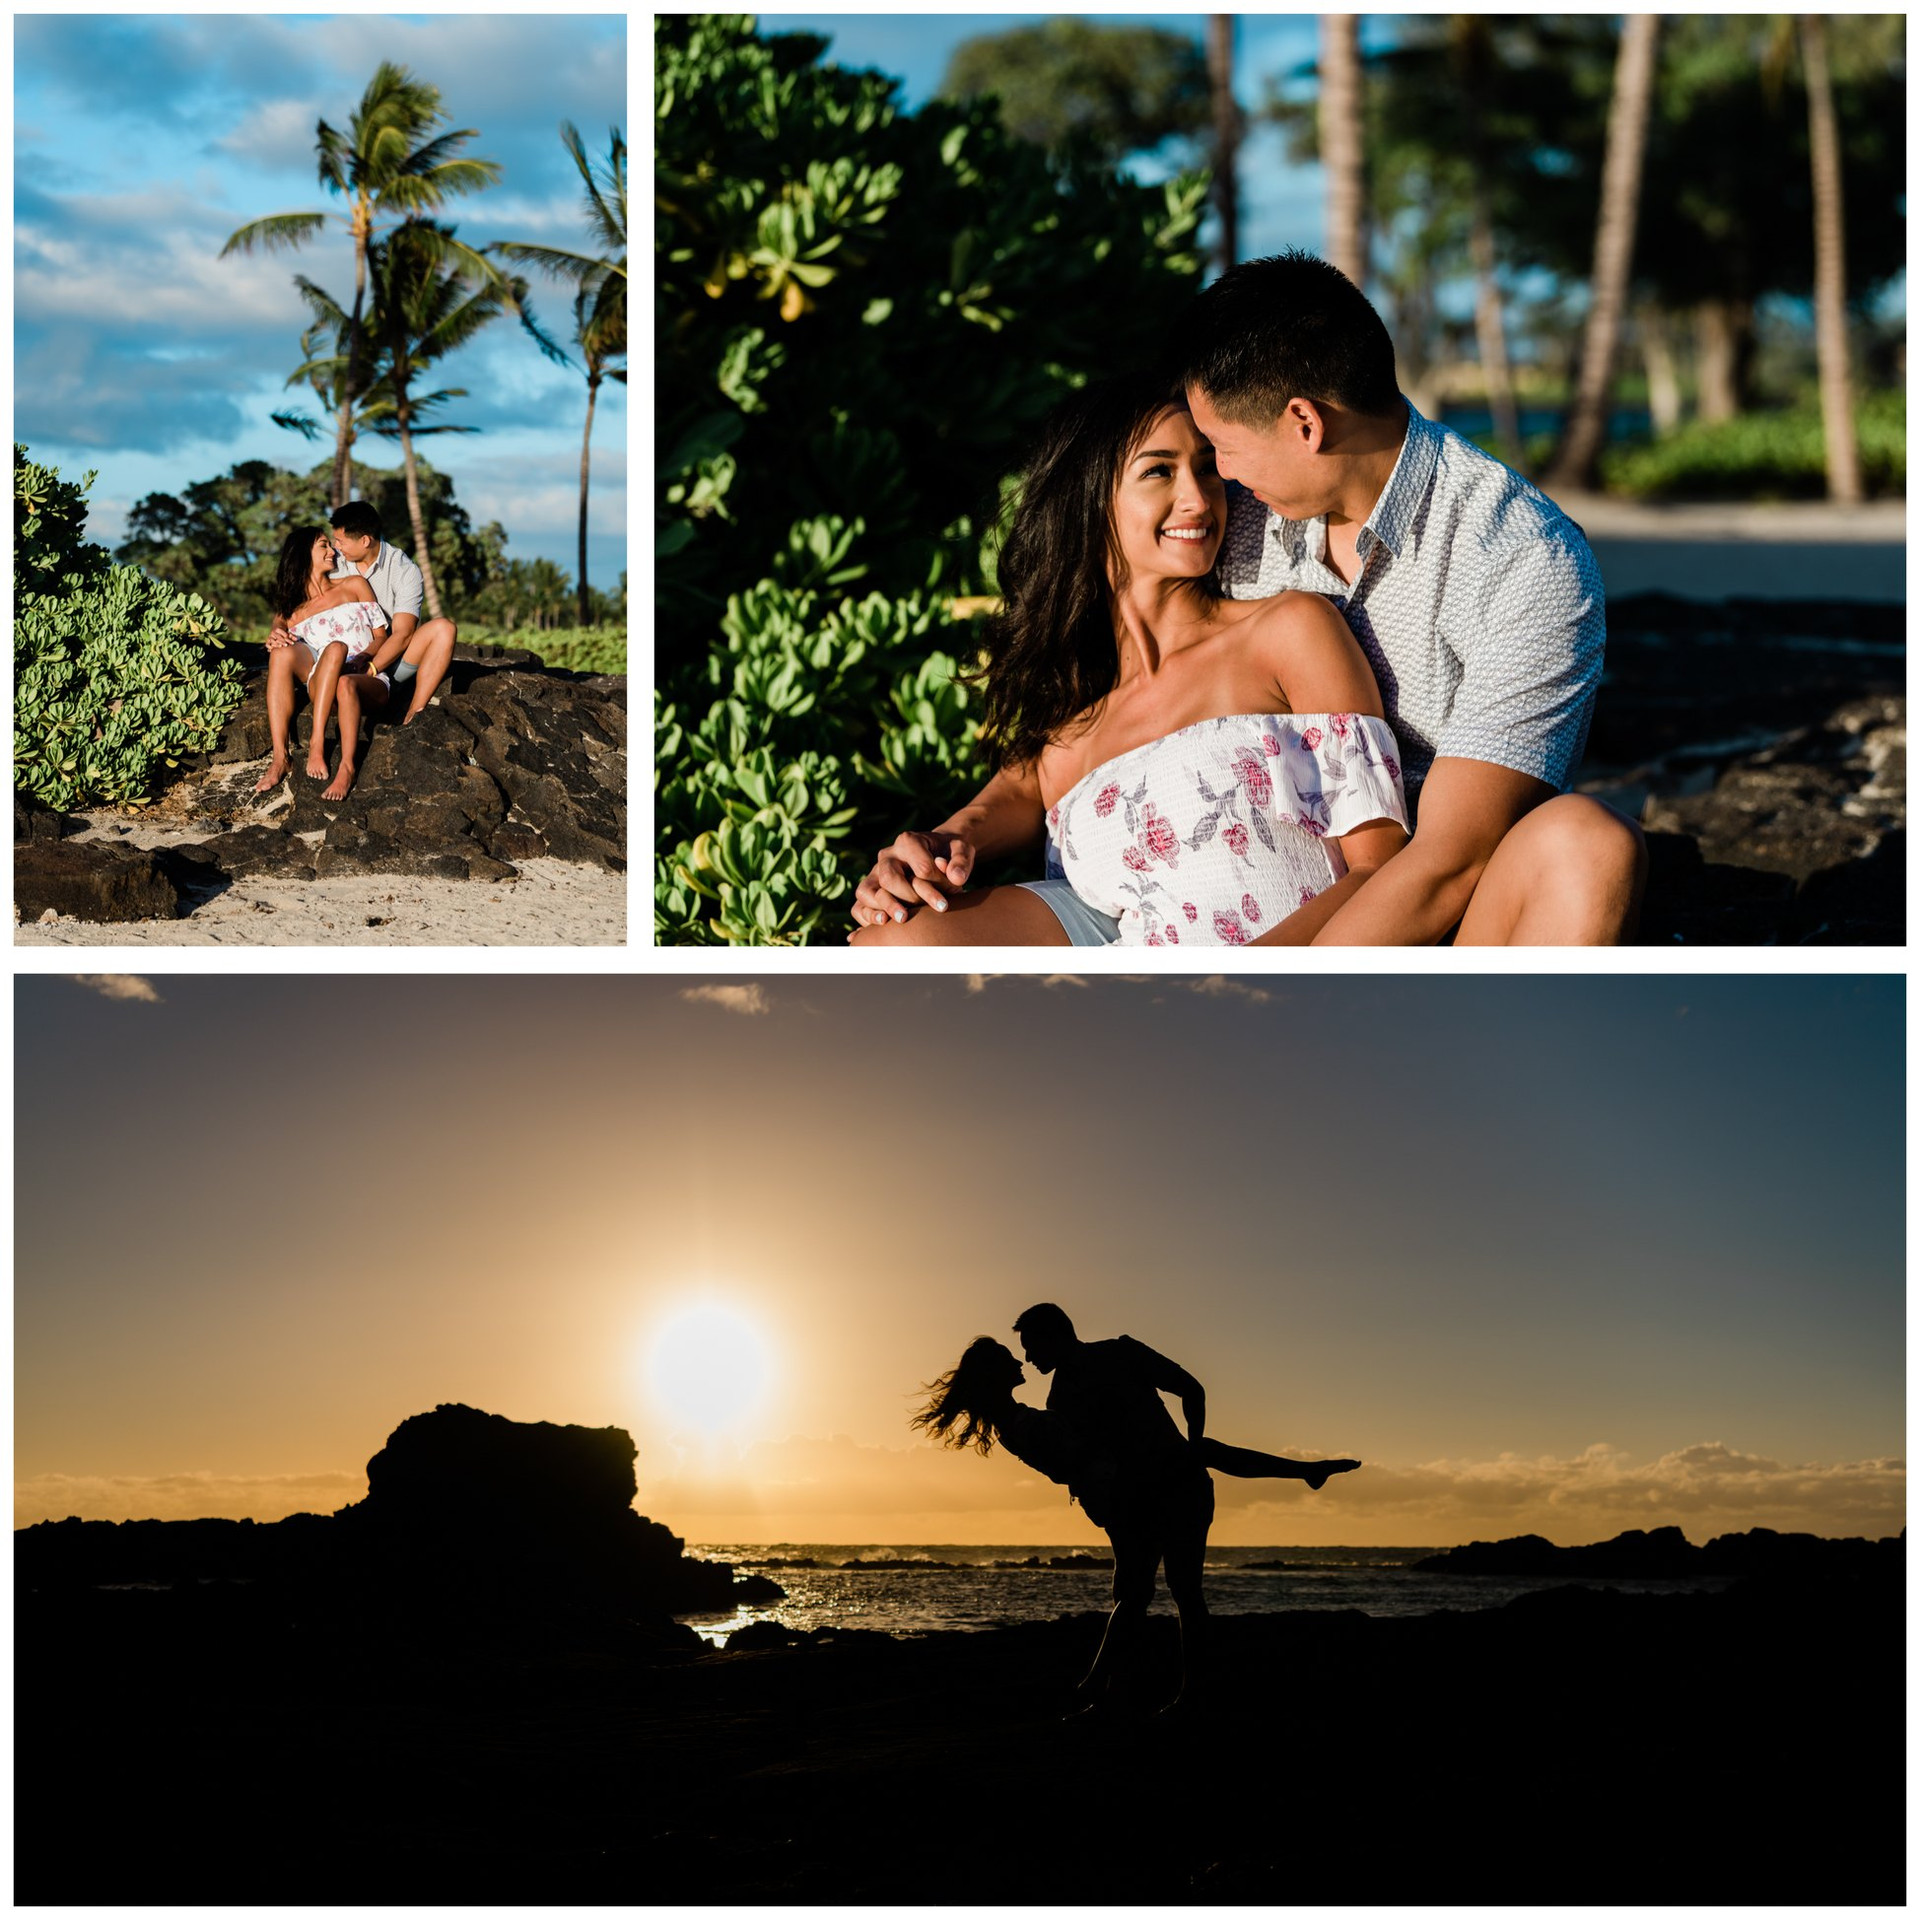 Hawaii Engagment Photography 1.jpg